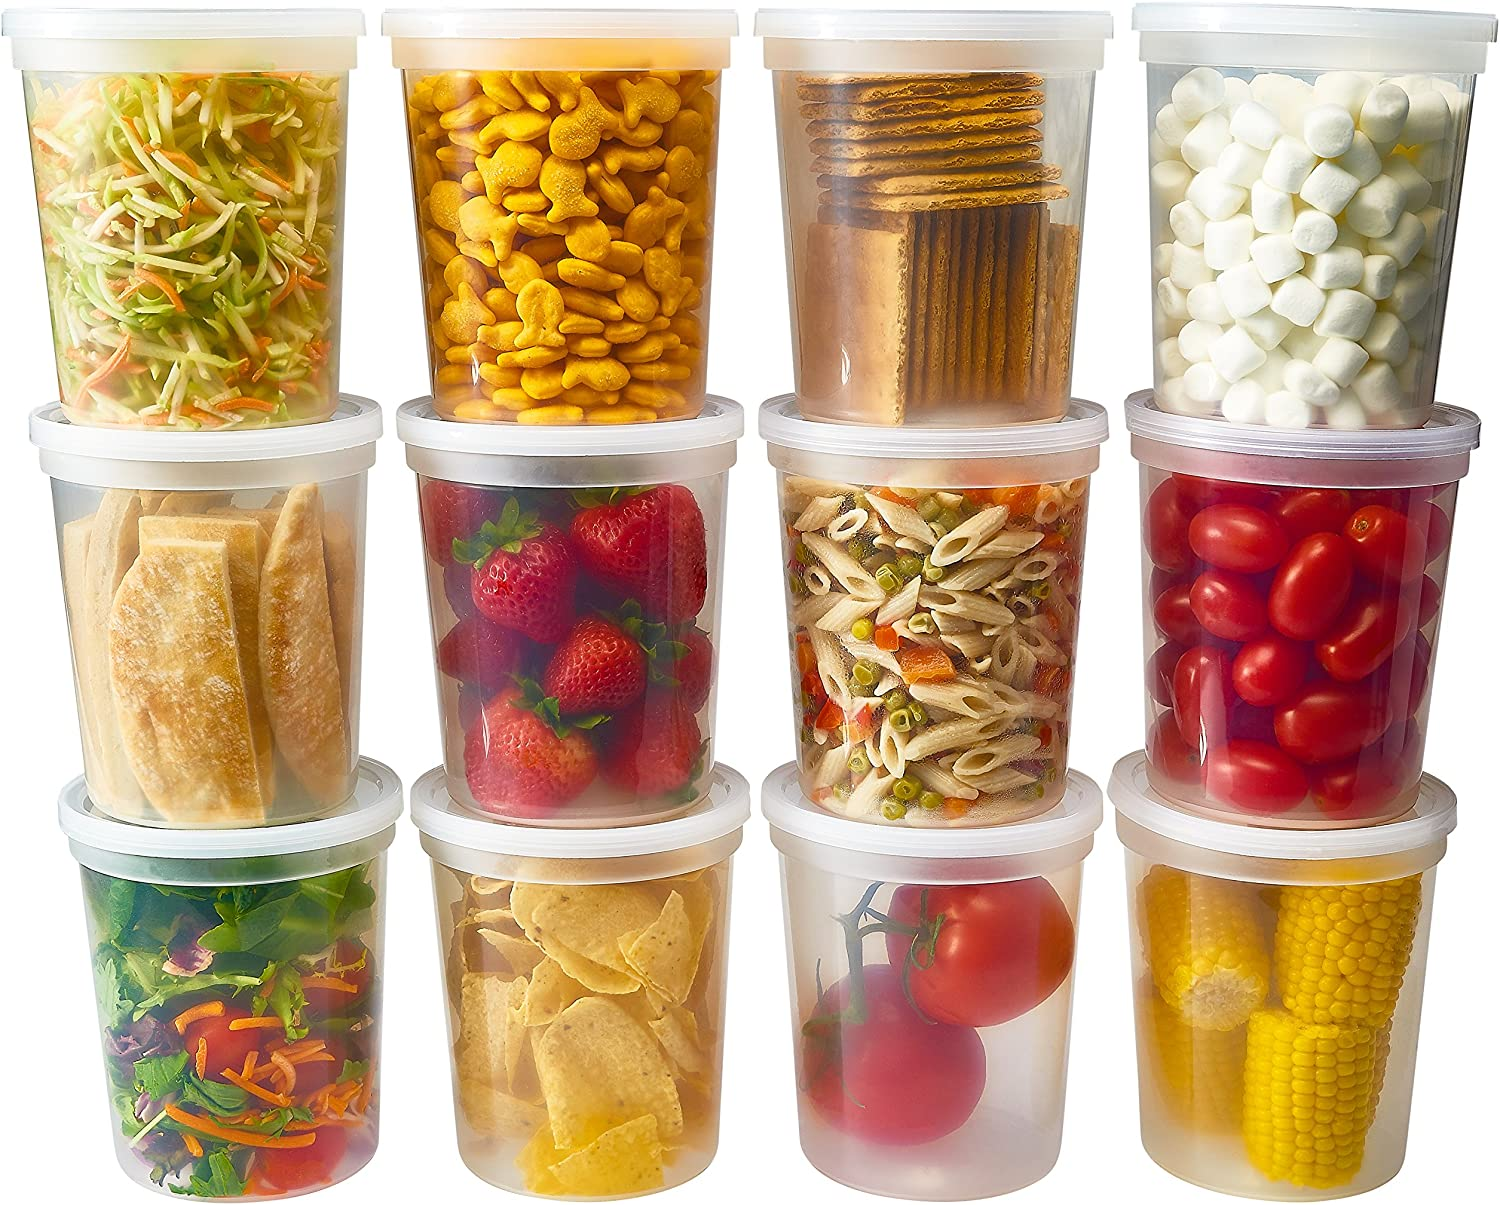 DuraHome - Deli food Storage Containers with Lids 32 oz, Quart Pack of 24 Leak-proof Freezer Safe Microwaveable Soup Storage Container - Clear Plastic Premium Quality